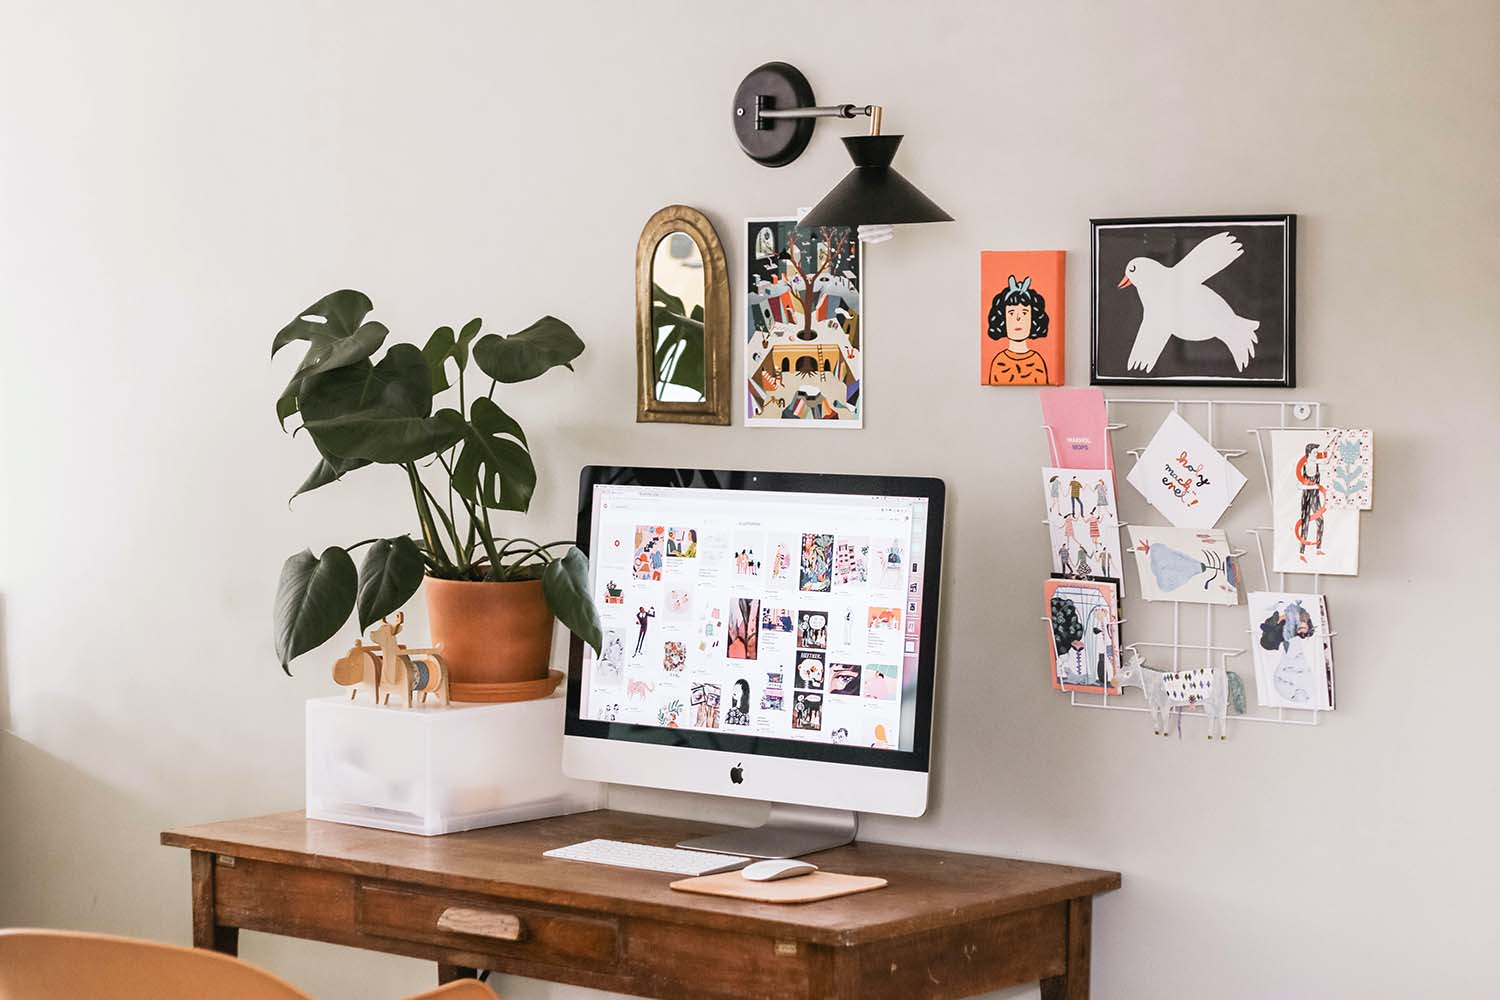 Separating Your Work And Personal Life When Running A Business From Home